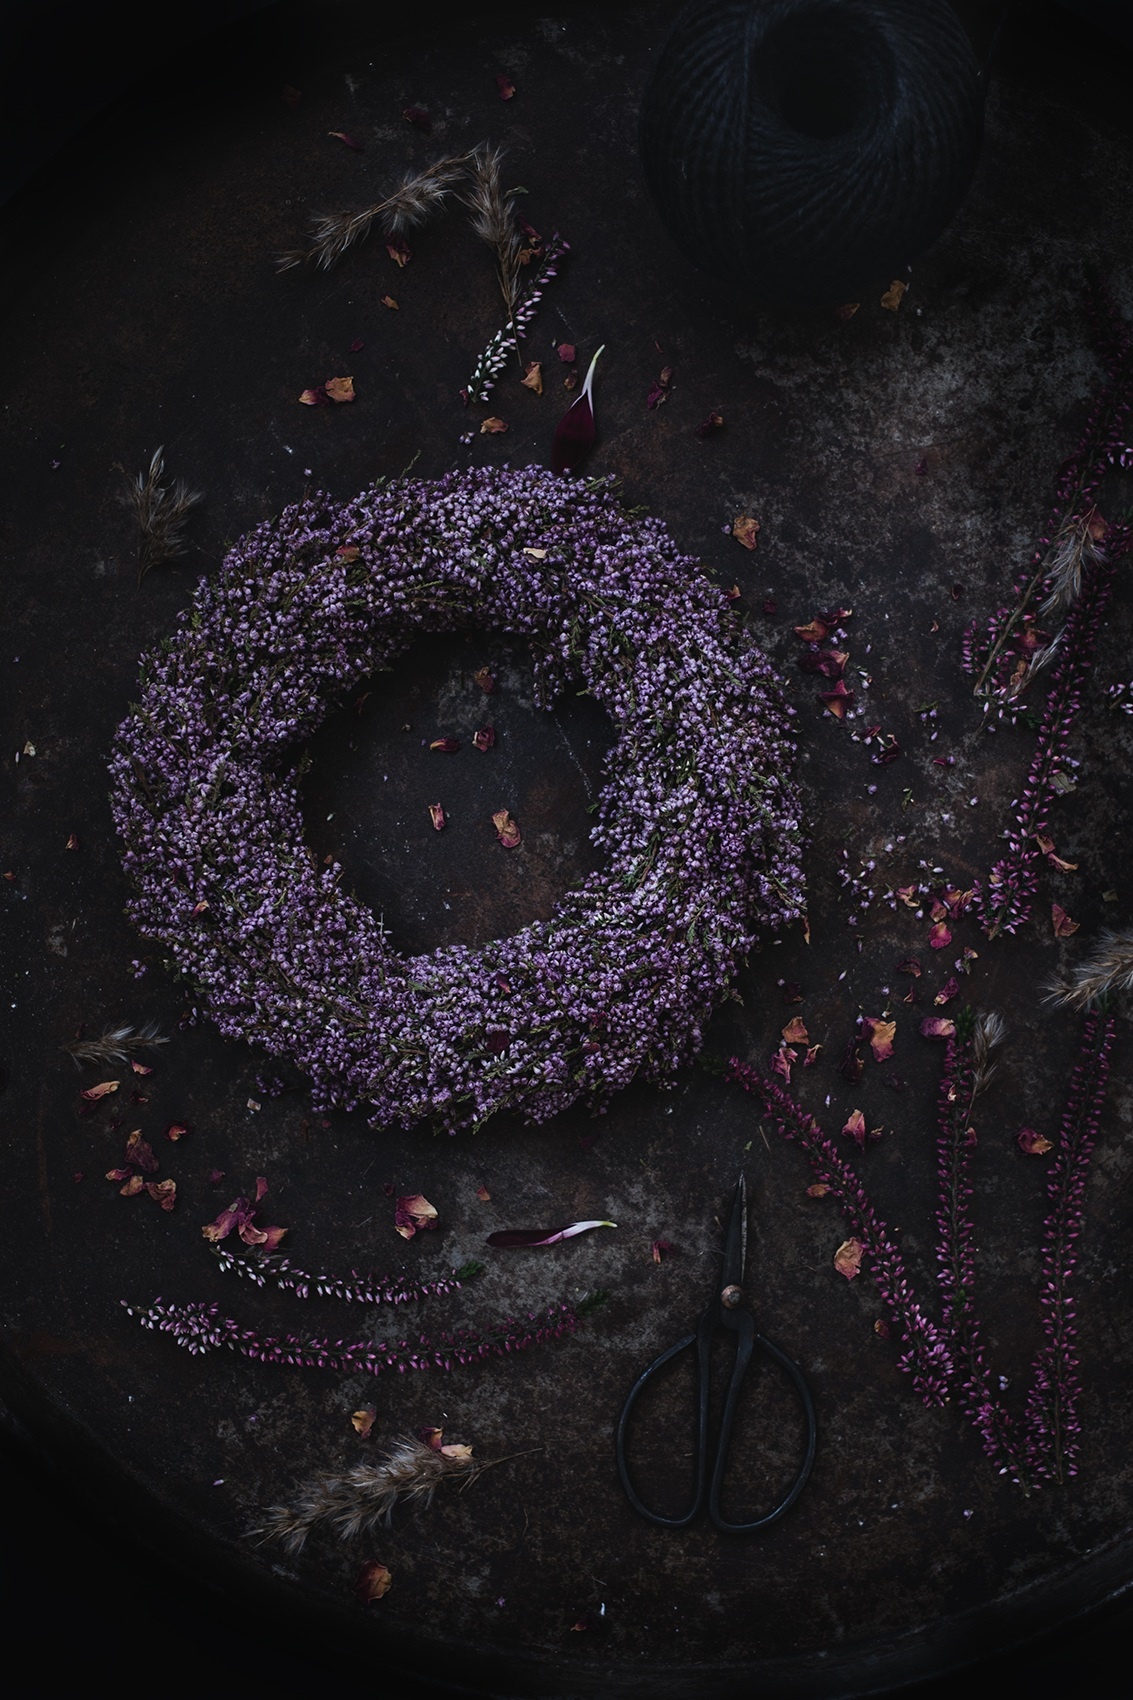 Dark & Moody Flowers by Christina Greve